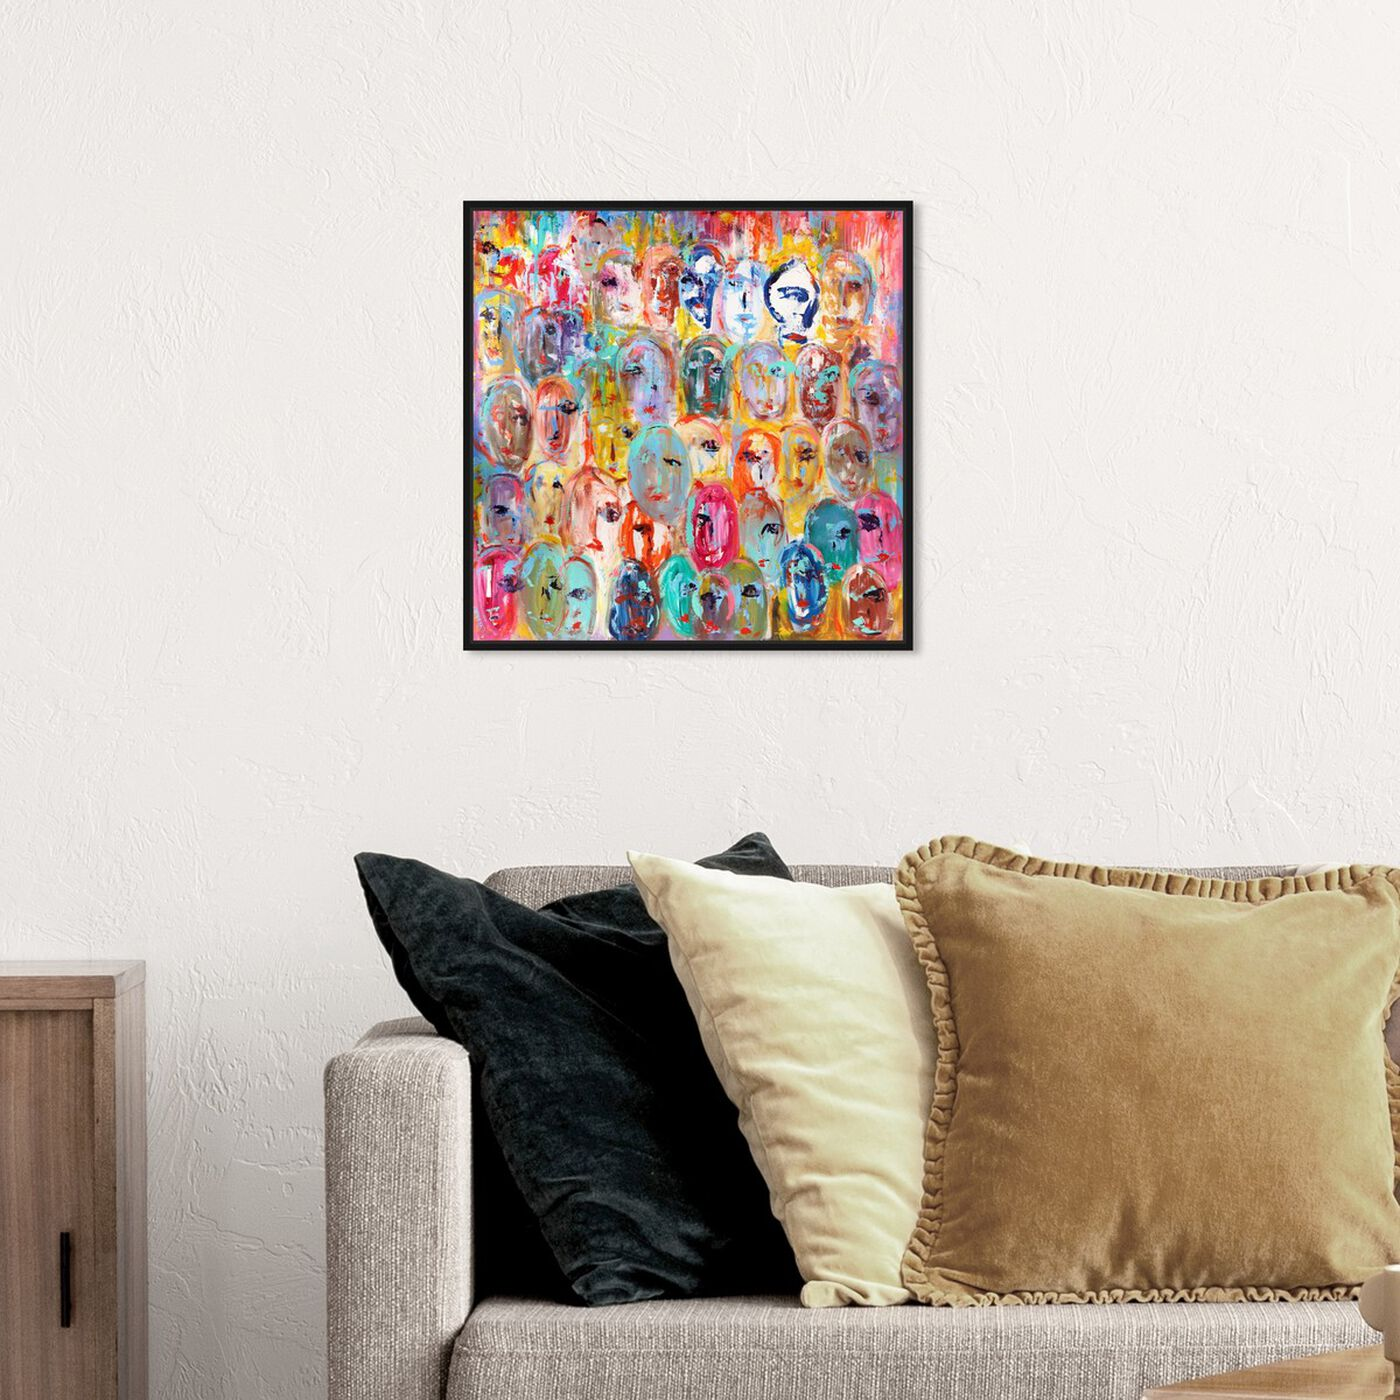 Hanging view of Sai - Visages De Couleur featuring abstract and paint art.